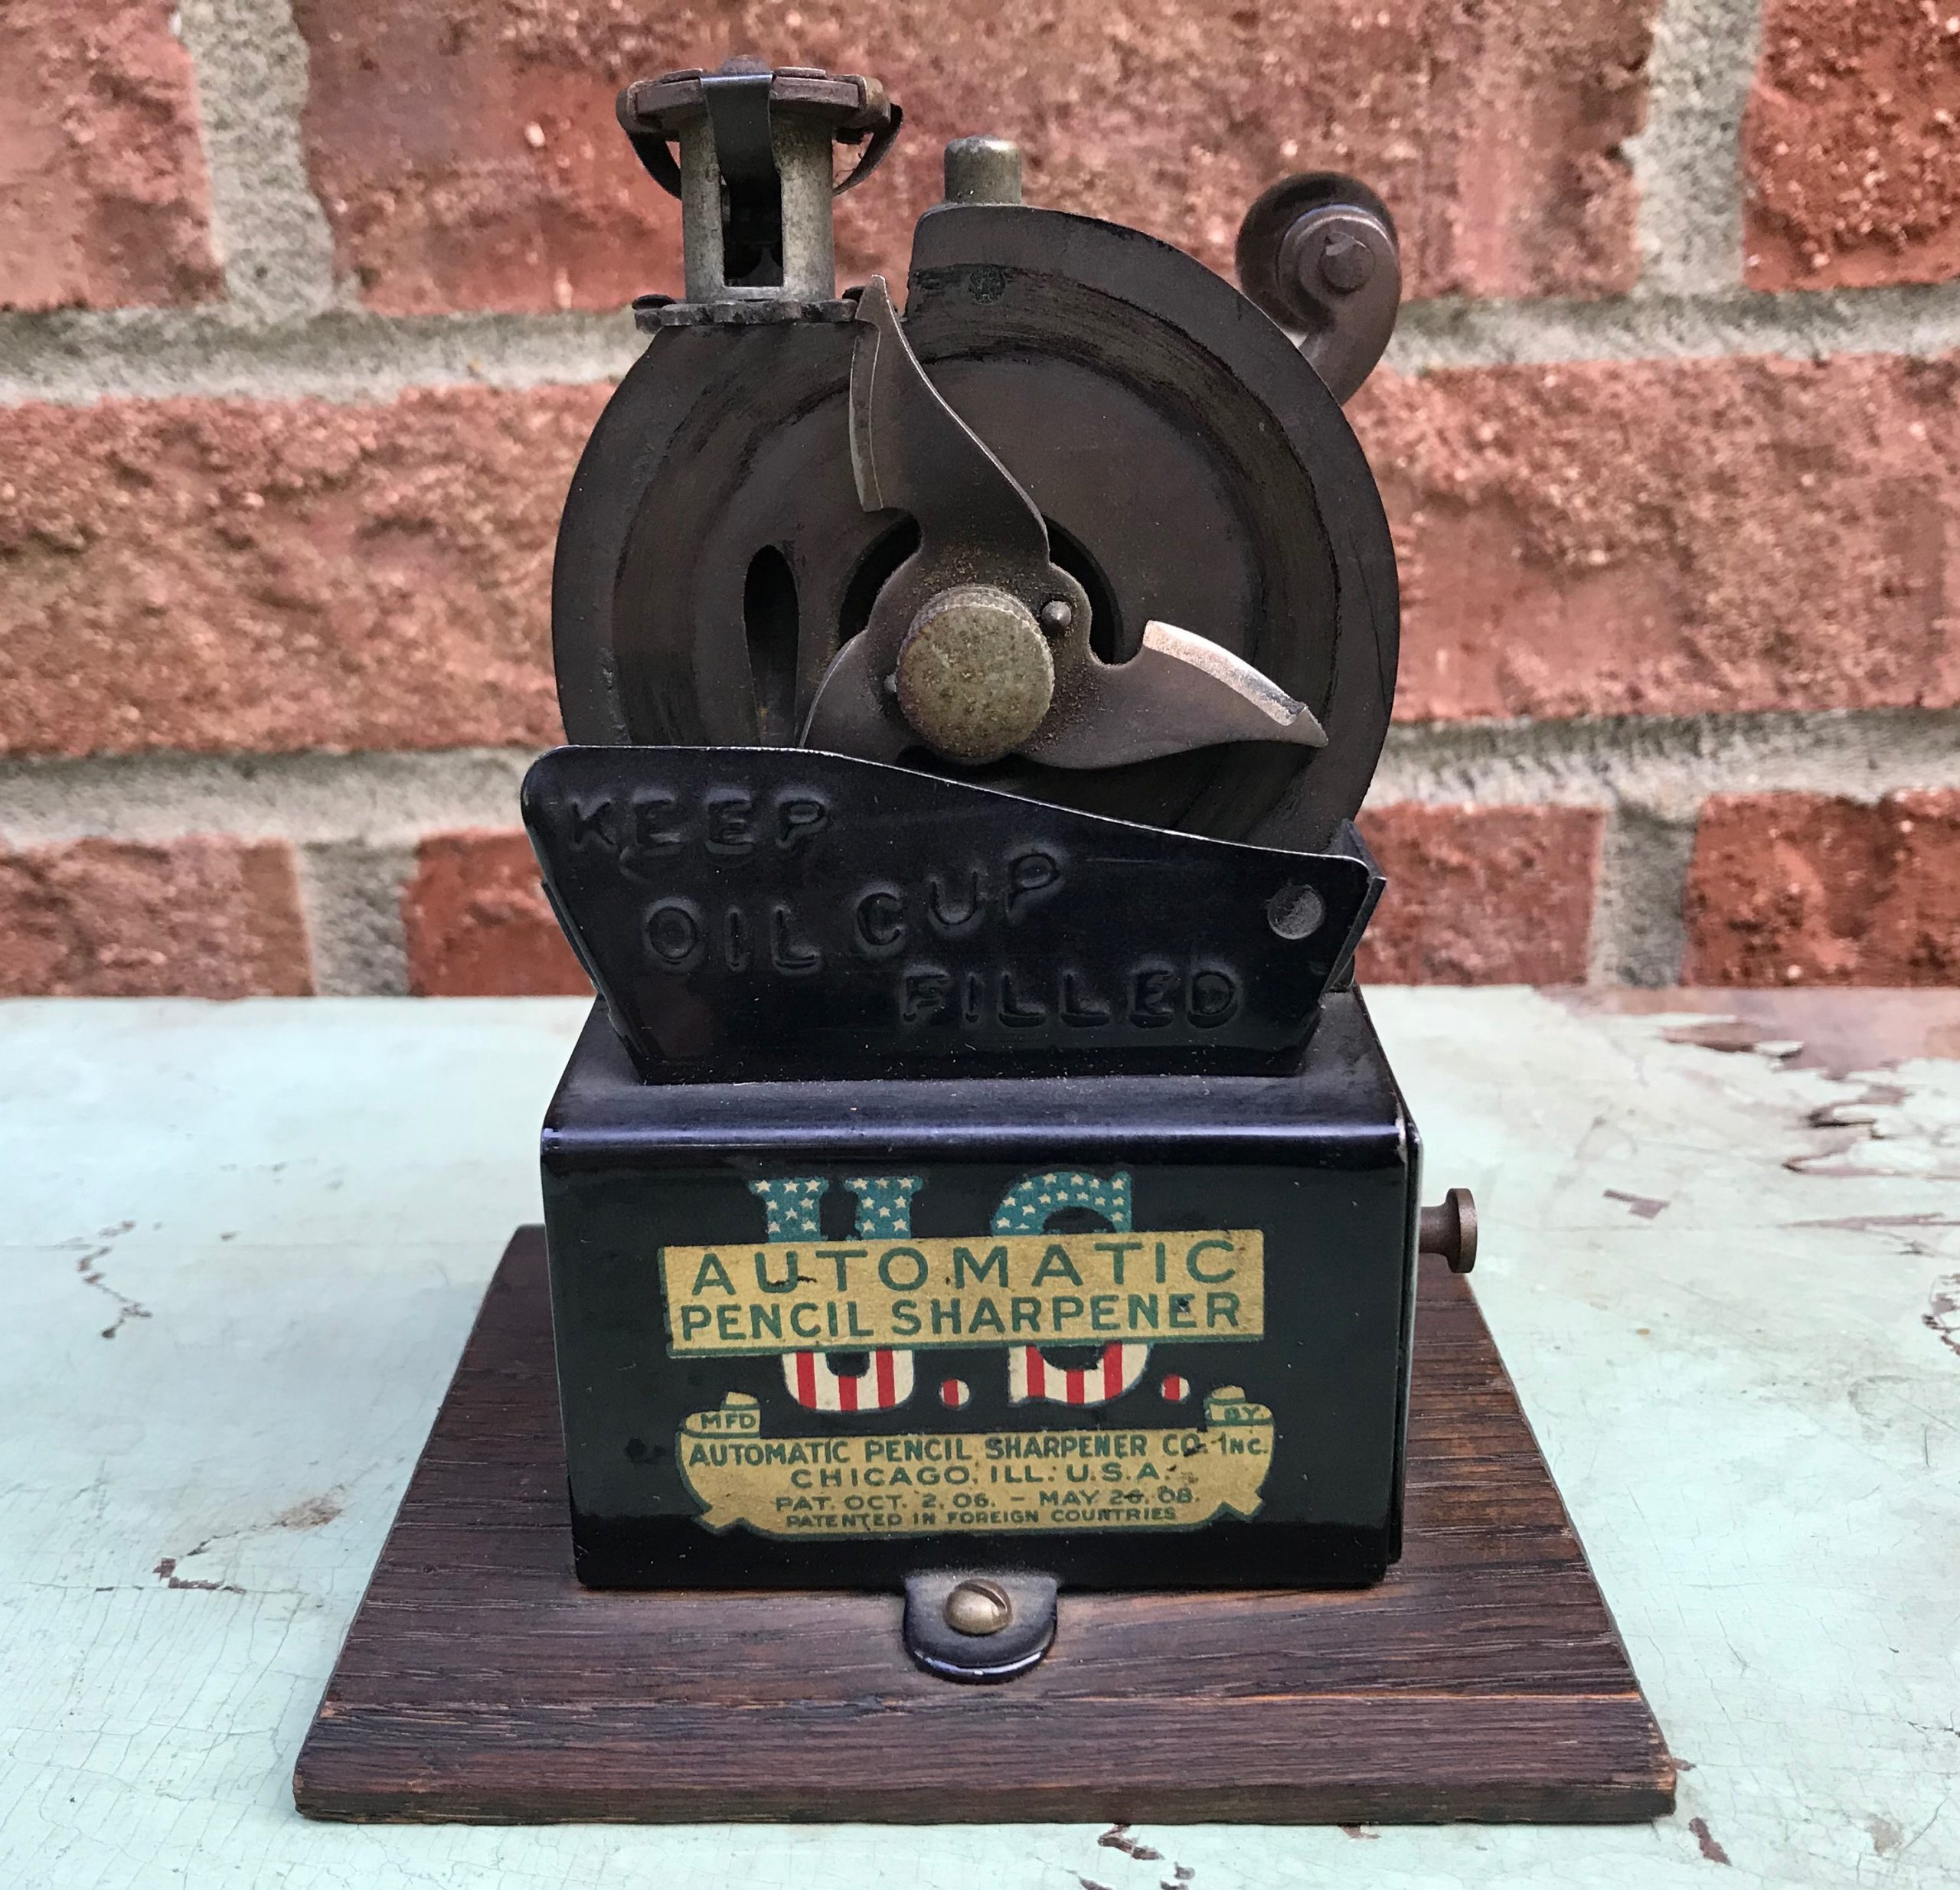 U. S. Automatic Pencil Sharpener